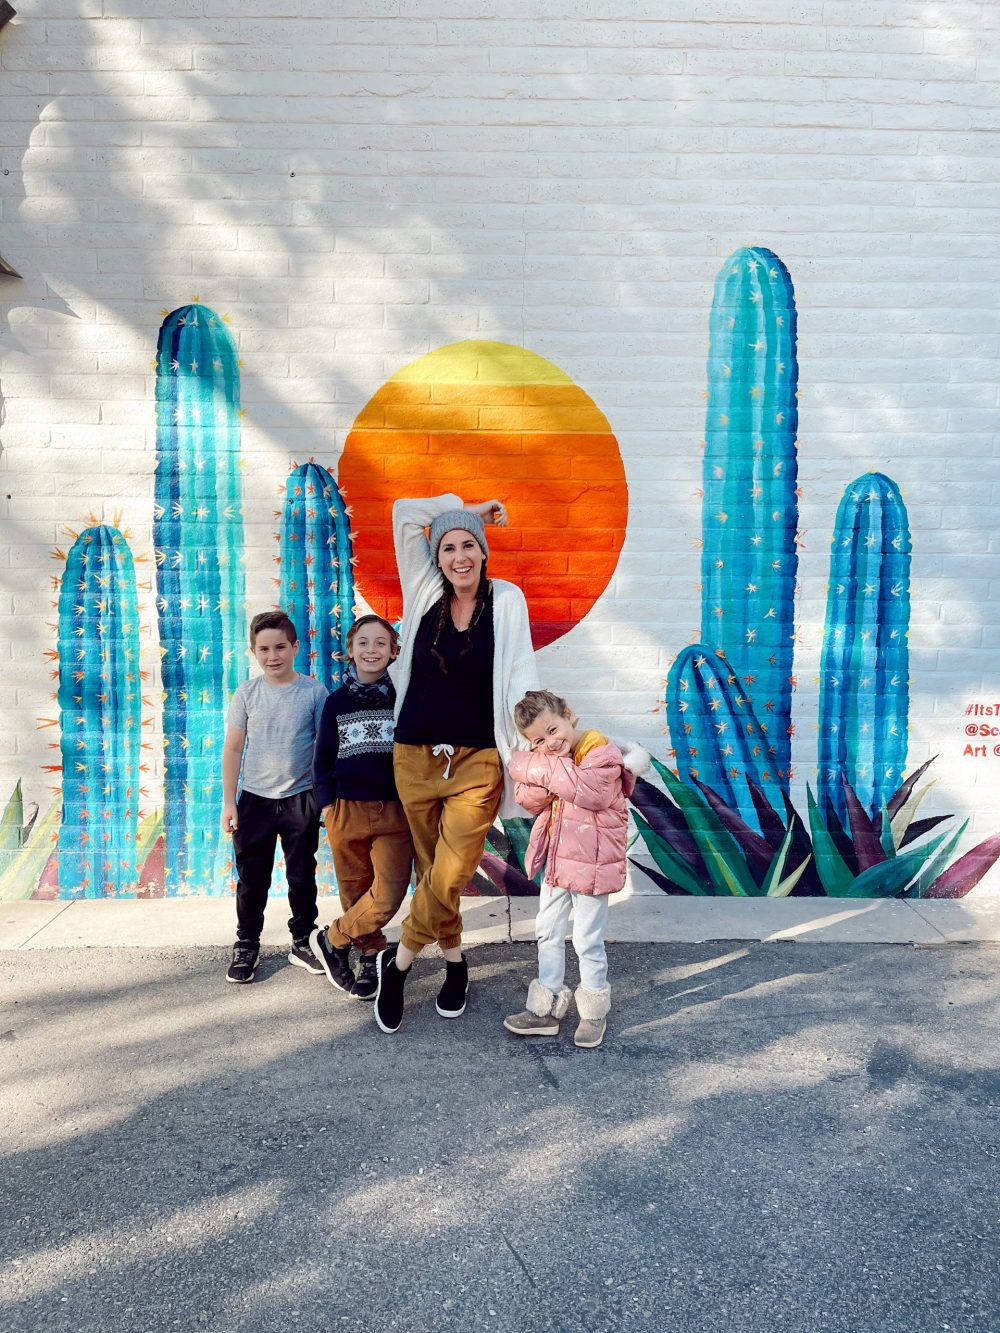 One of the Best Year Round Sun Destinations for Large Family Friendly Travel, Scottsdale Arizona |Guide by popular Florida travel blog, Fresh Mommy Blog: image of a mom and her kids standing in front of a cactus wall mural.